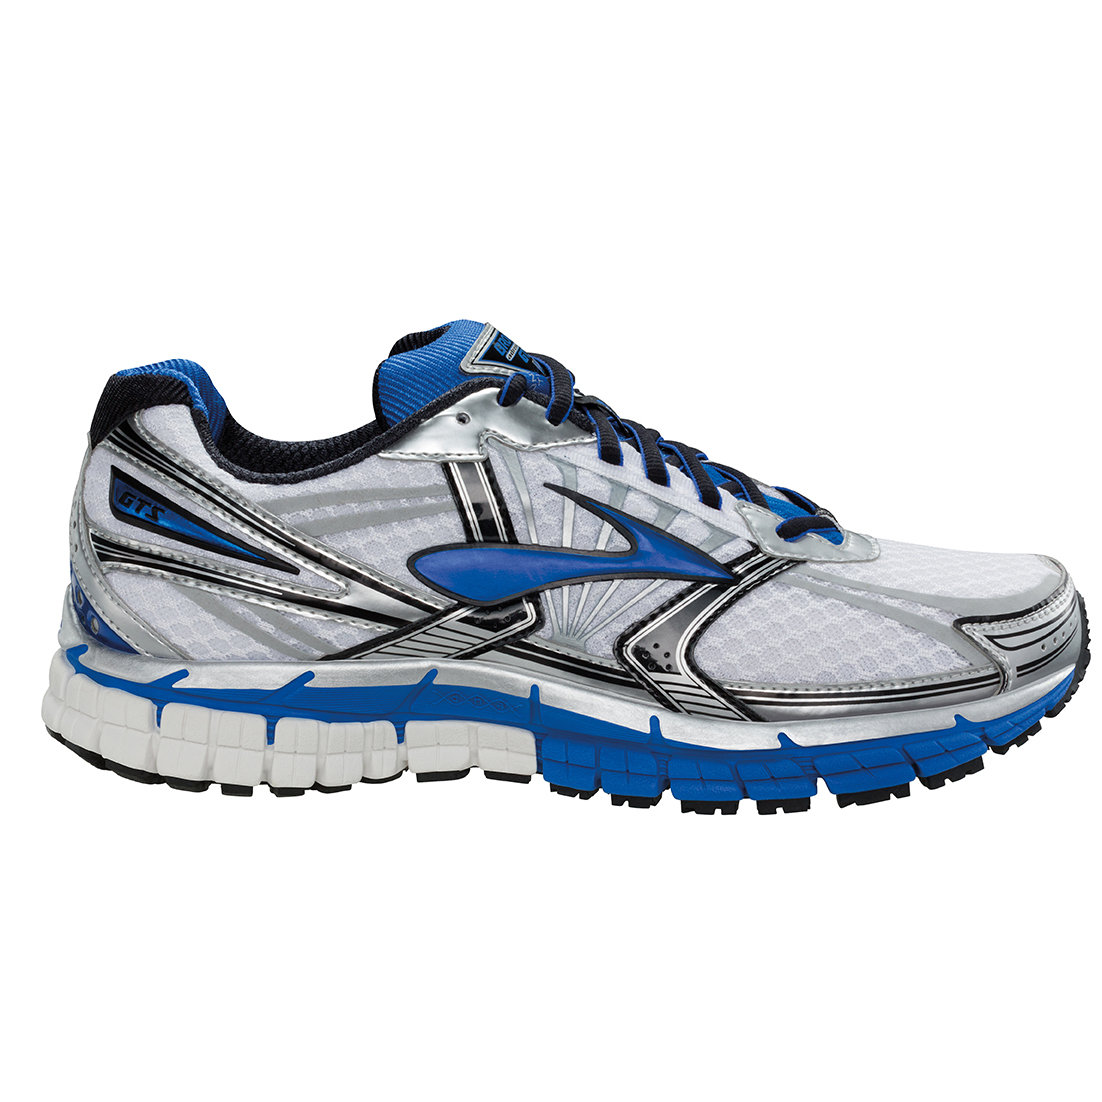 Brooks Adrenaline 14 B in Blau